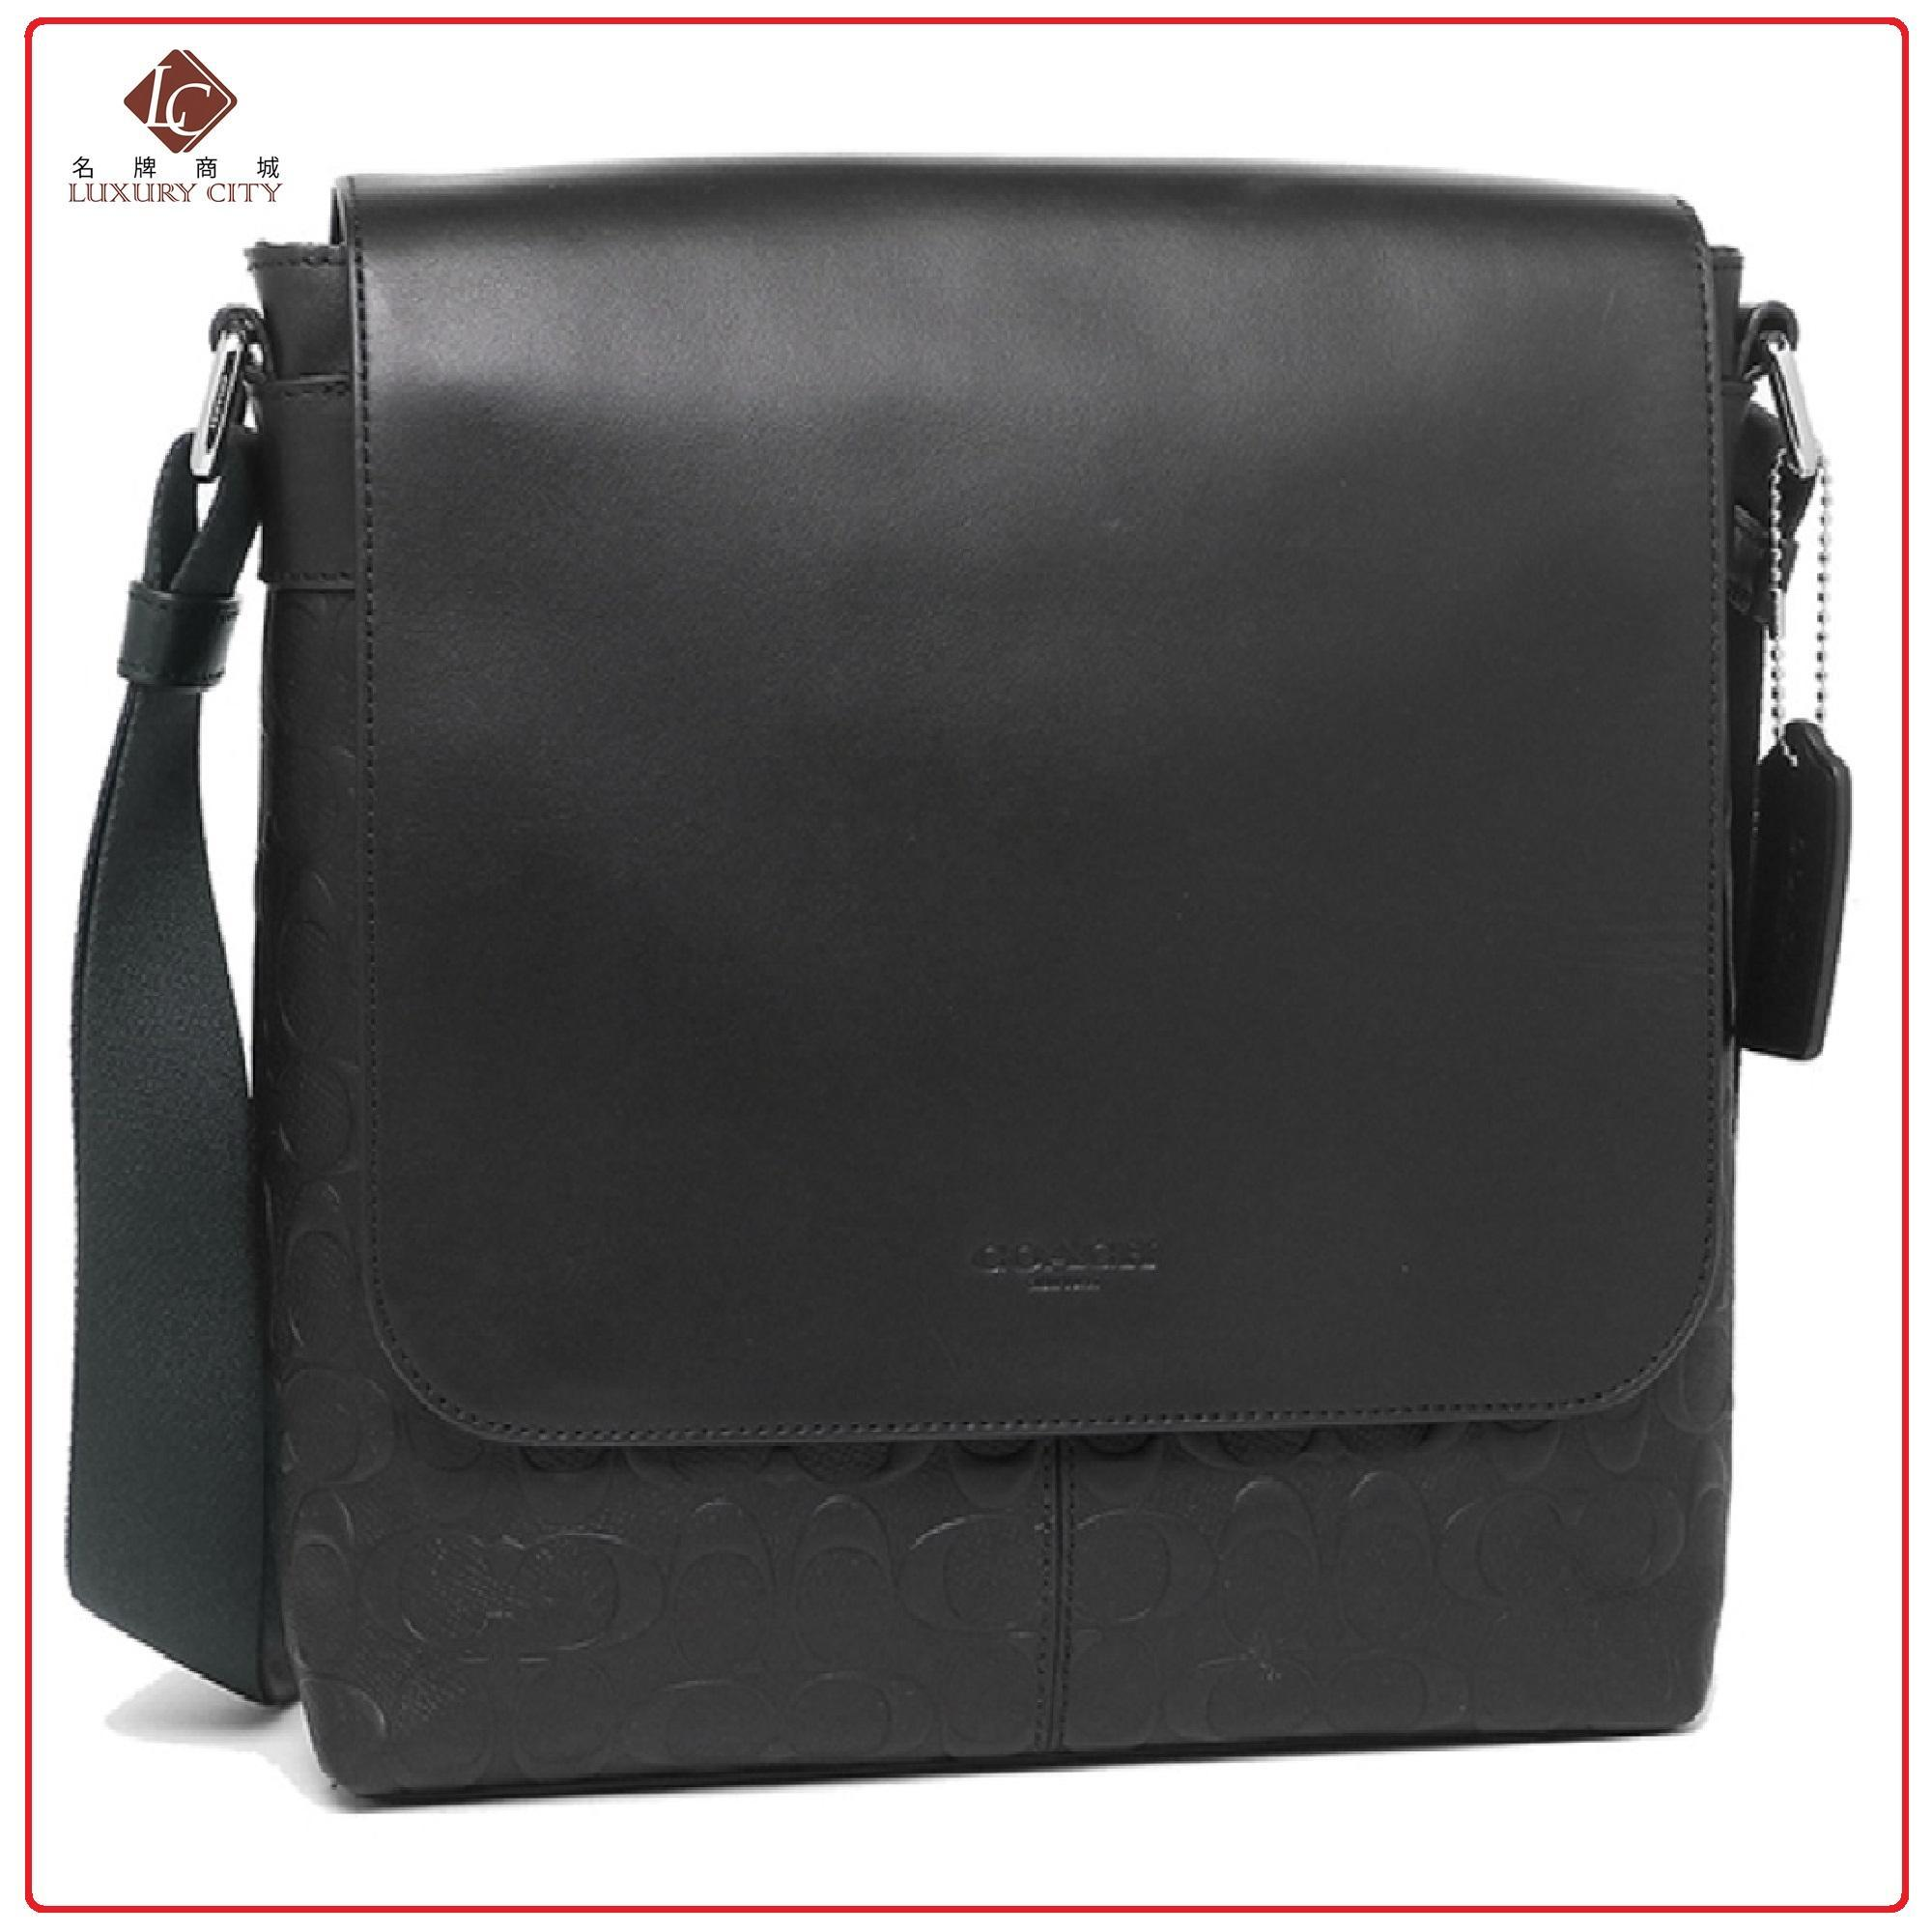 COACH CHARLES SMALL MESSENGER IN SIGNATURE LEATHER F28577 (BLACK) c3d396379ddbc